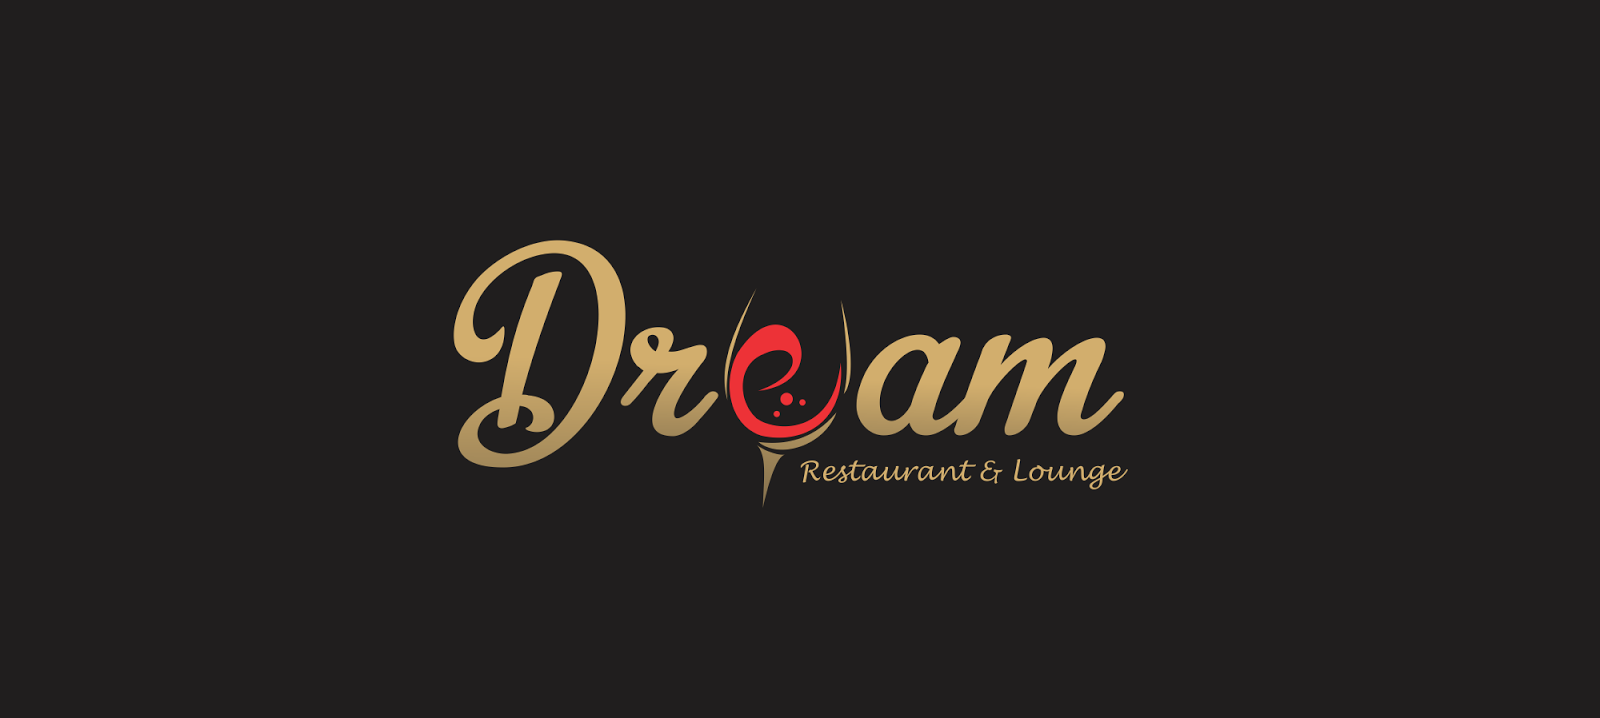 Simple restaurant and lounge logo design ~ Ehroo.